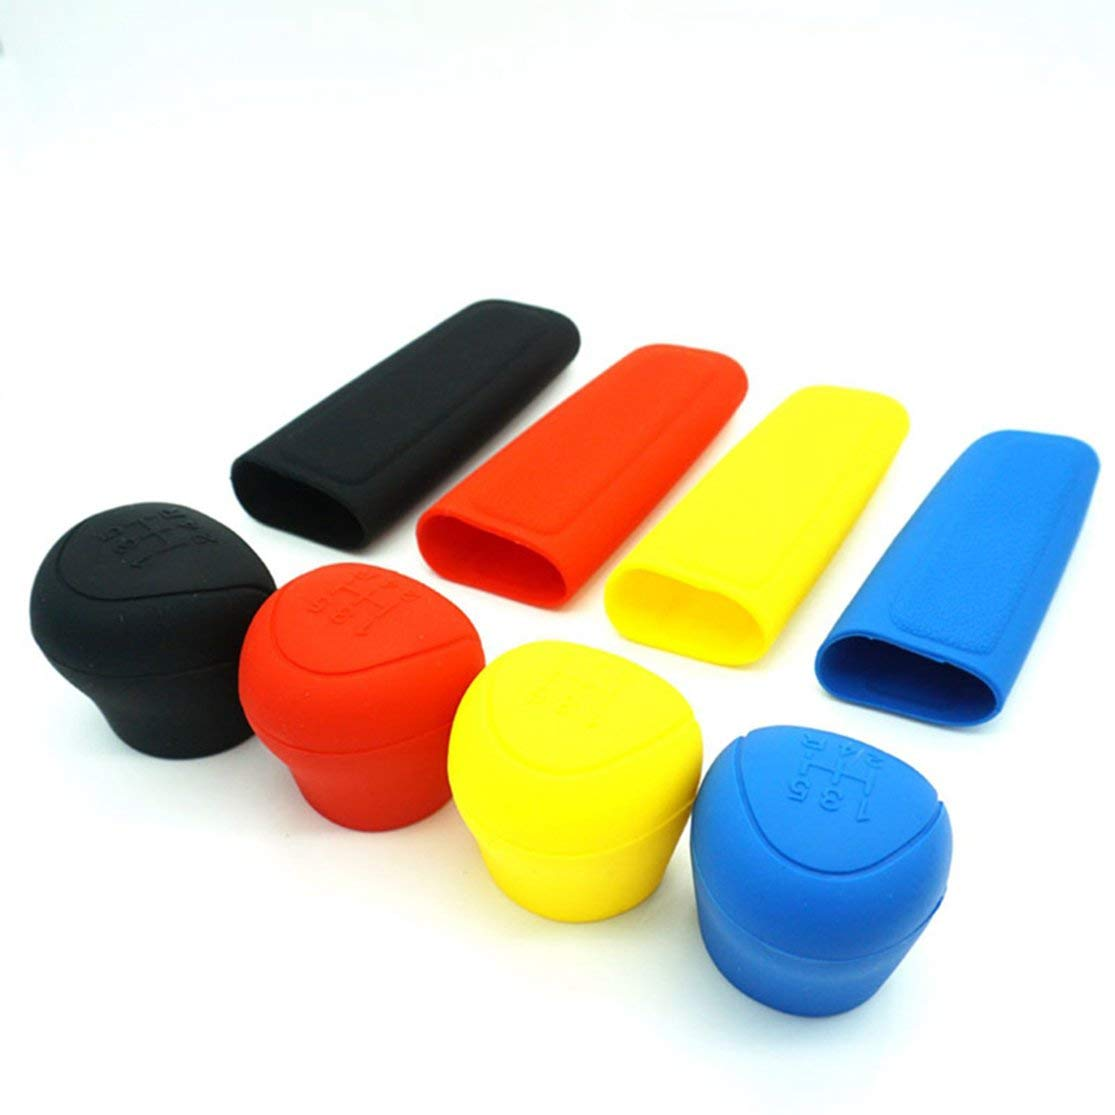 Color:black Car Silicone Gear Shift Knob Rod Cover Parking Car Hand Brake Grip Protective Cover Case Decoration Styler